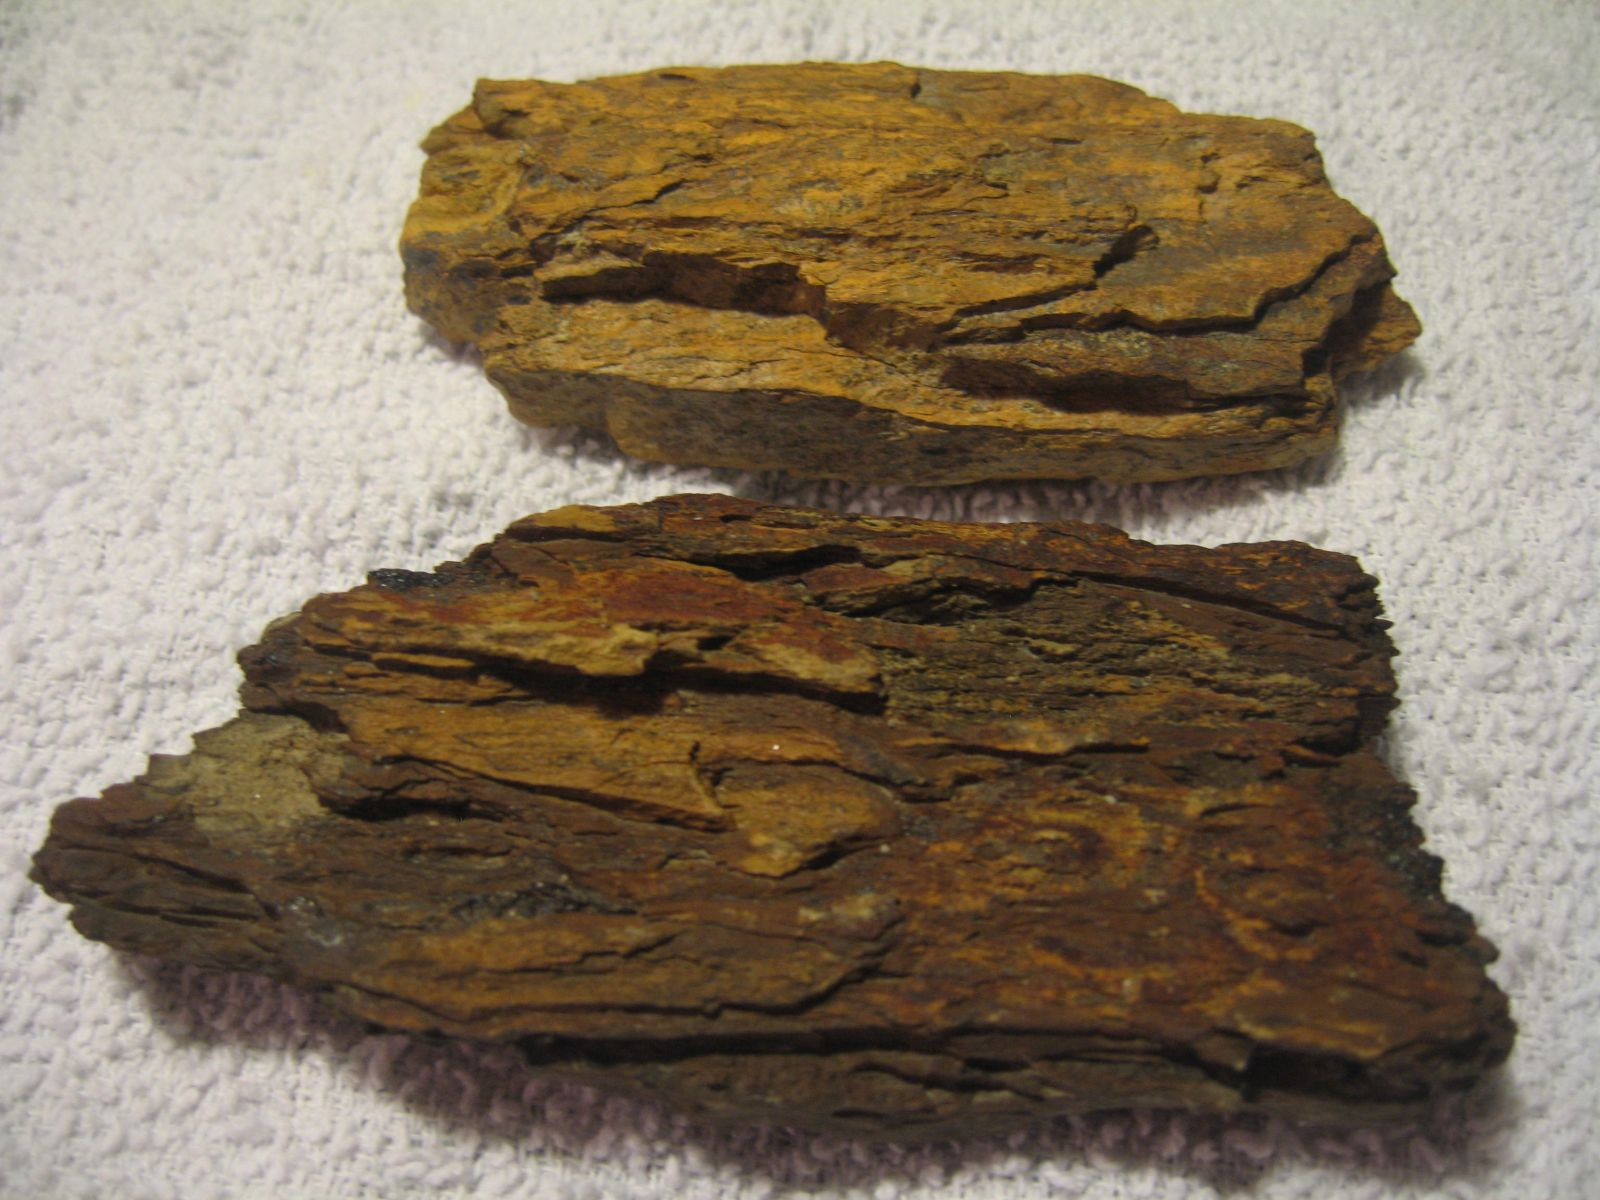 Petrified Wood - Casts